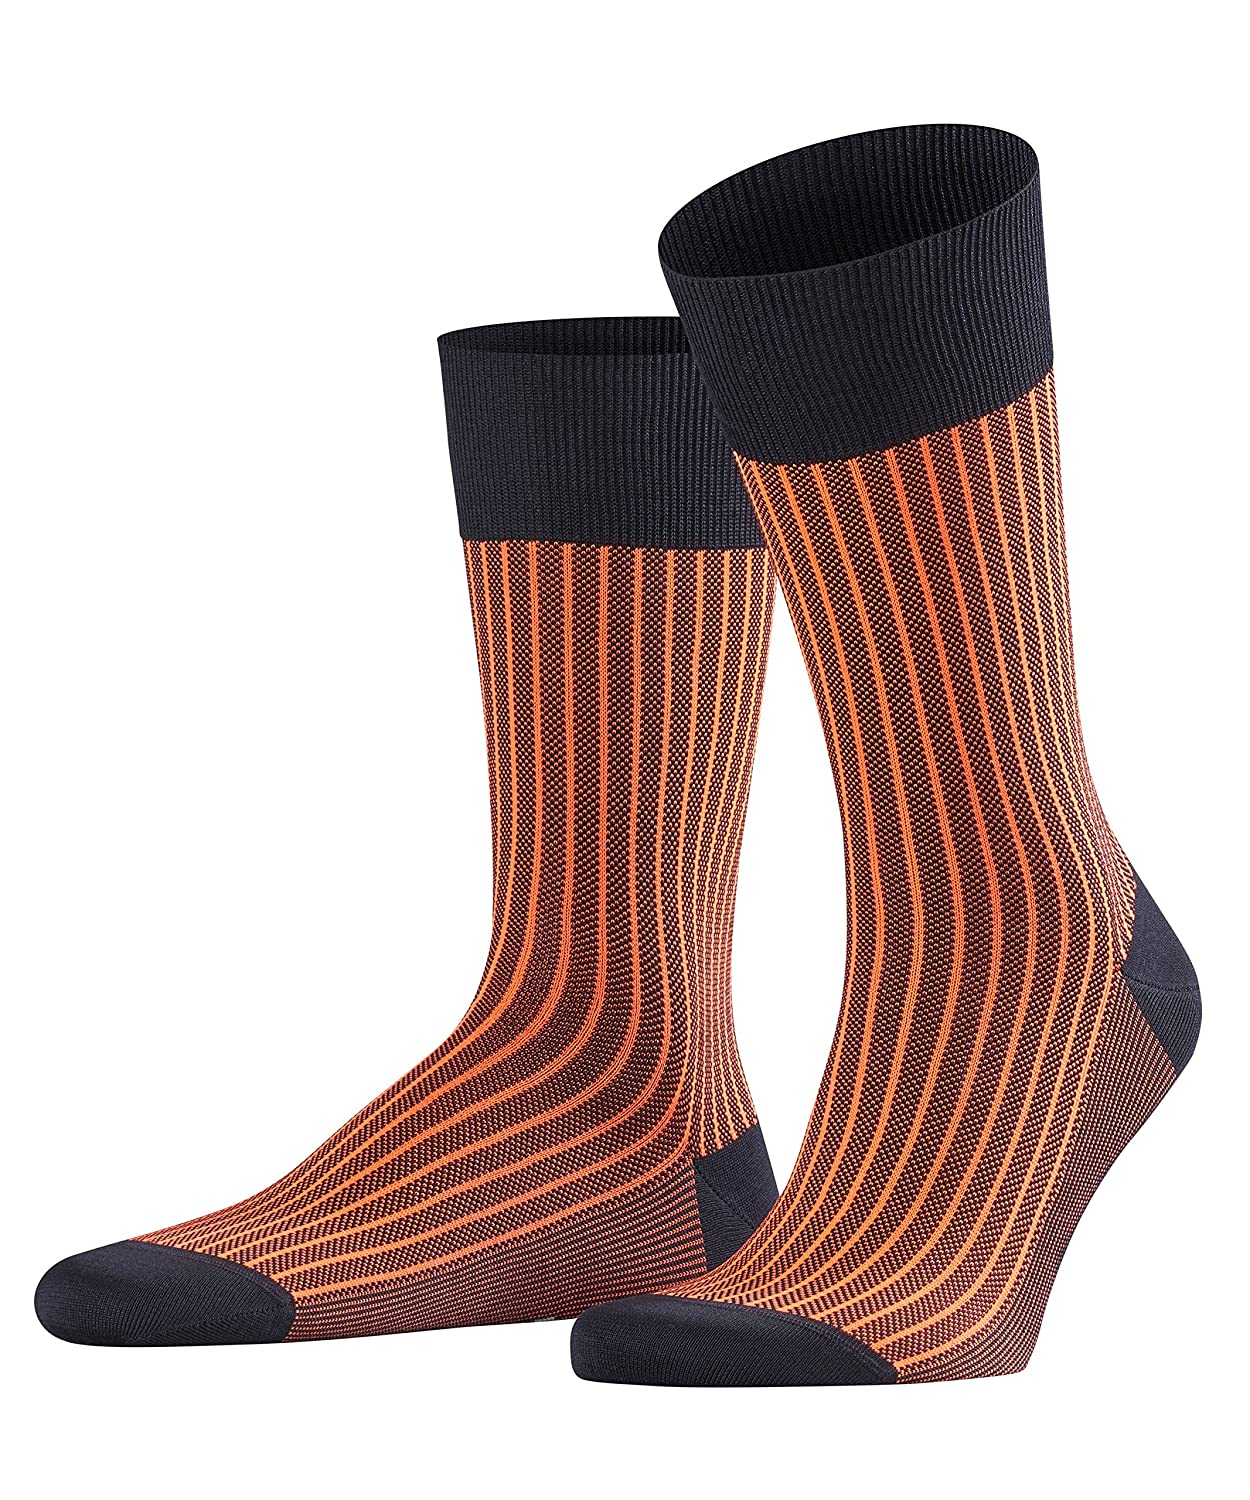 0Afh8|#Adidas Men Oxford Stripe Socks - Dark Navy, 39-40 Falke 13396